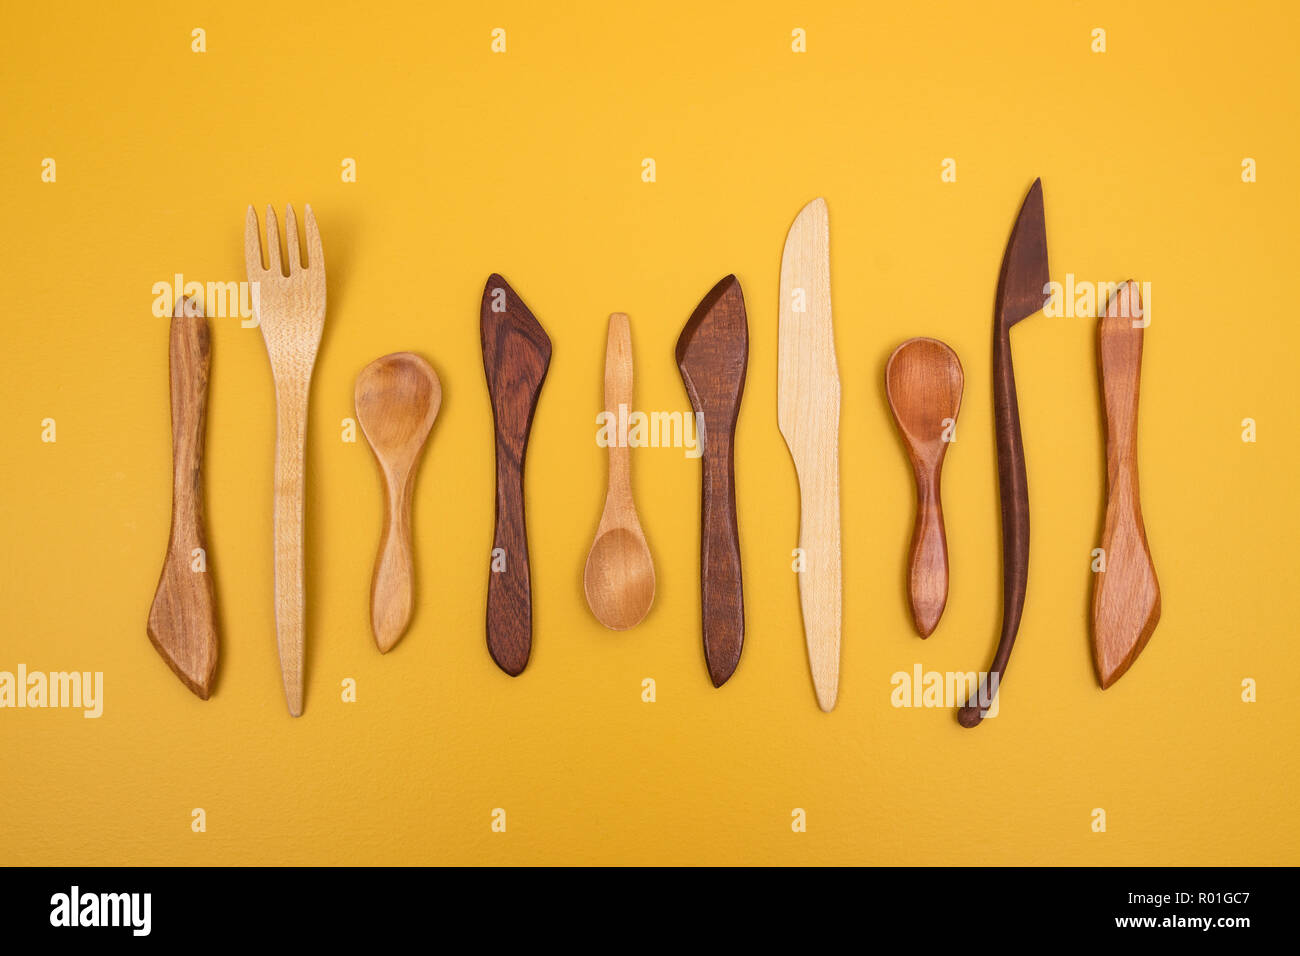 Handcrafted wooden utensils on yellow background. Fork, spoons and knives. - Stock Image